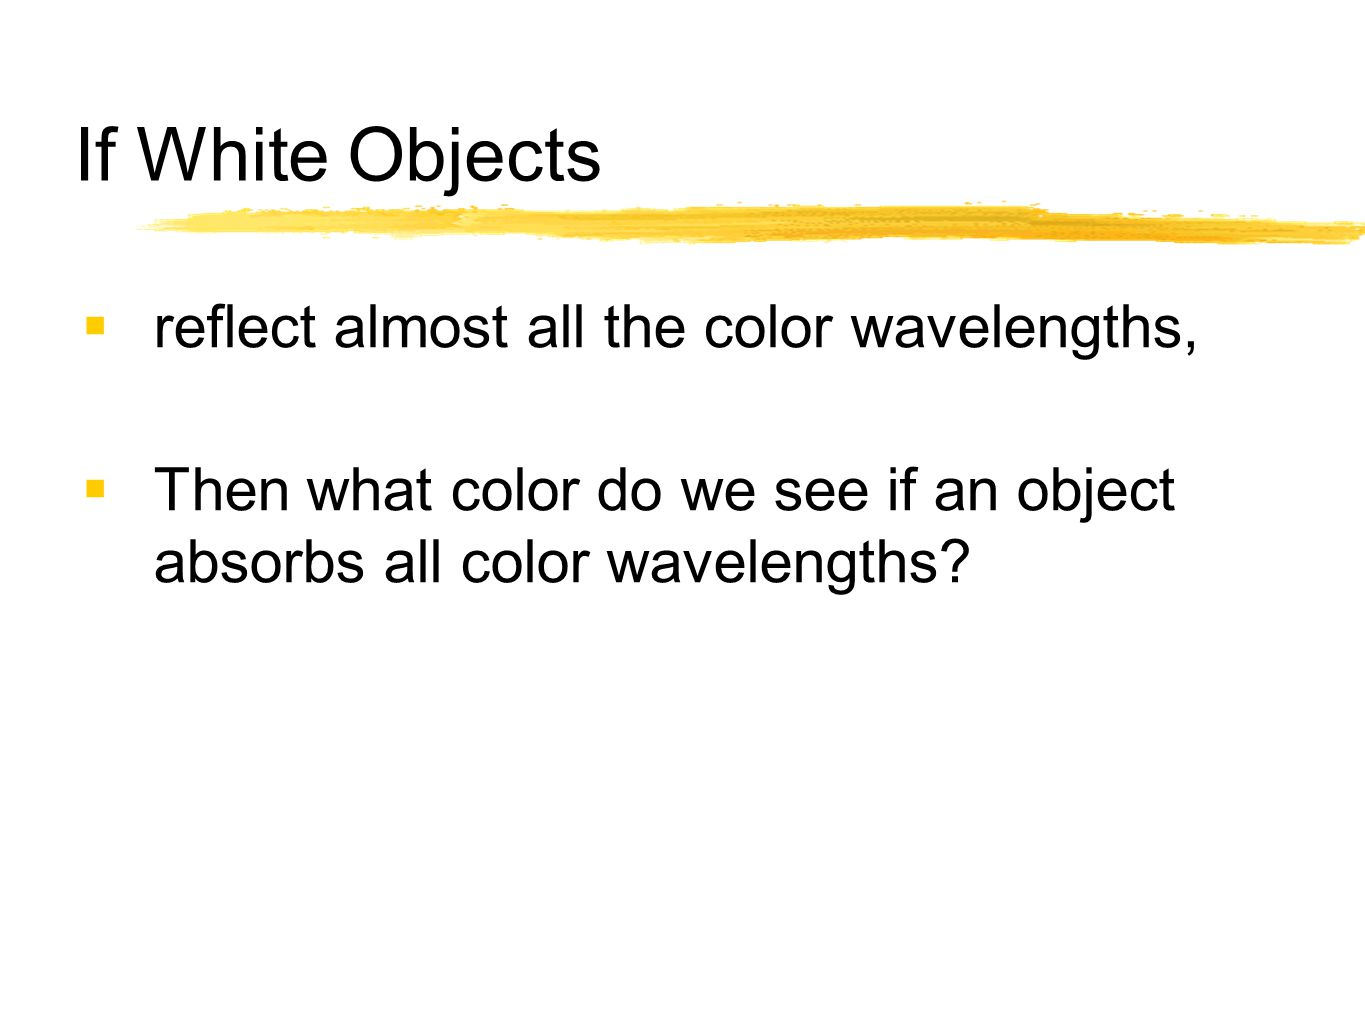 If White Objects reflect almost all the color wavelengths,